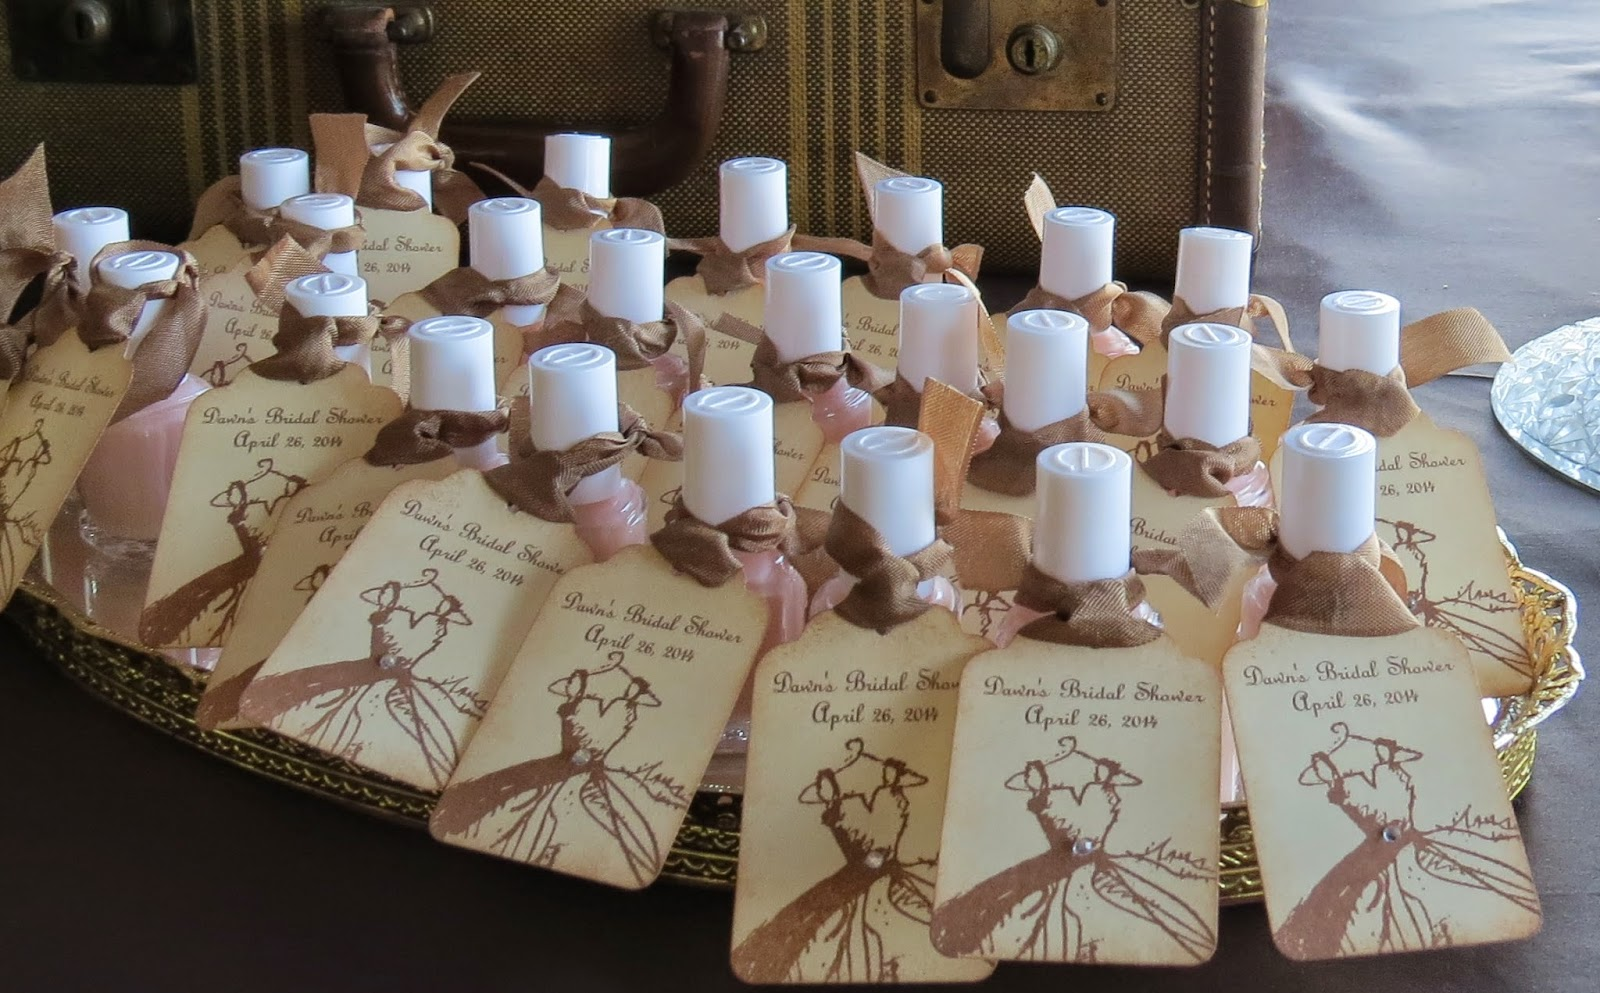 just a wedding party request favors posh bridal shower choosing along canada havesomething in with diverting favor made you gift gifts custom ideas